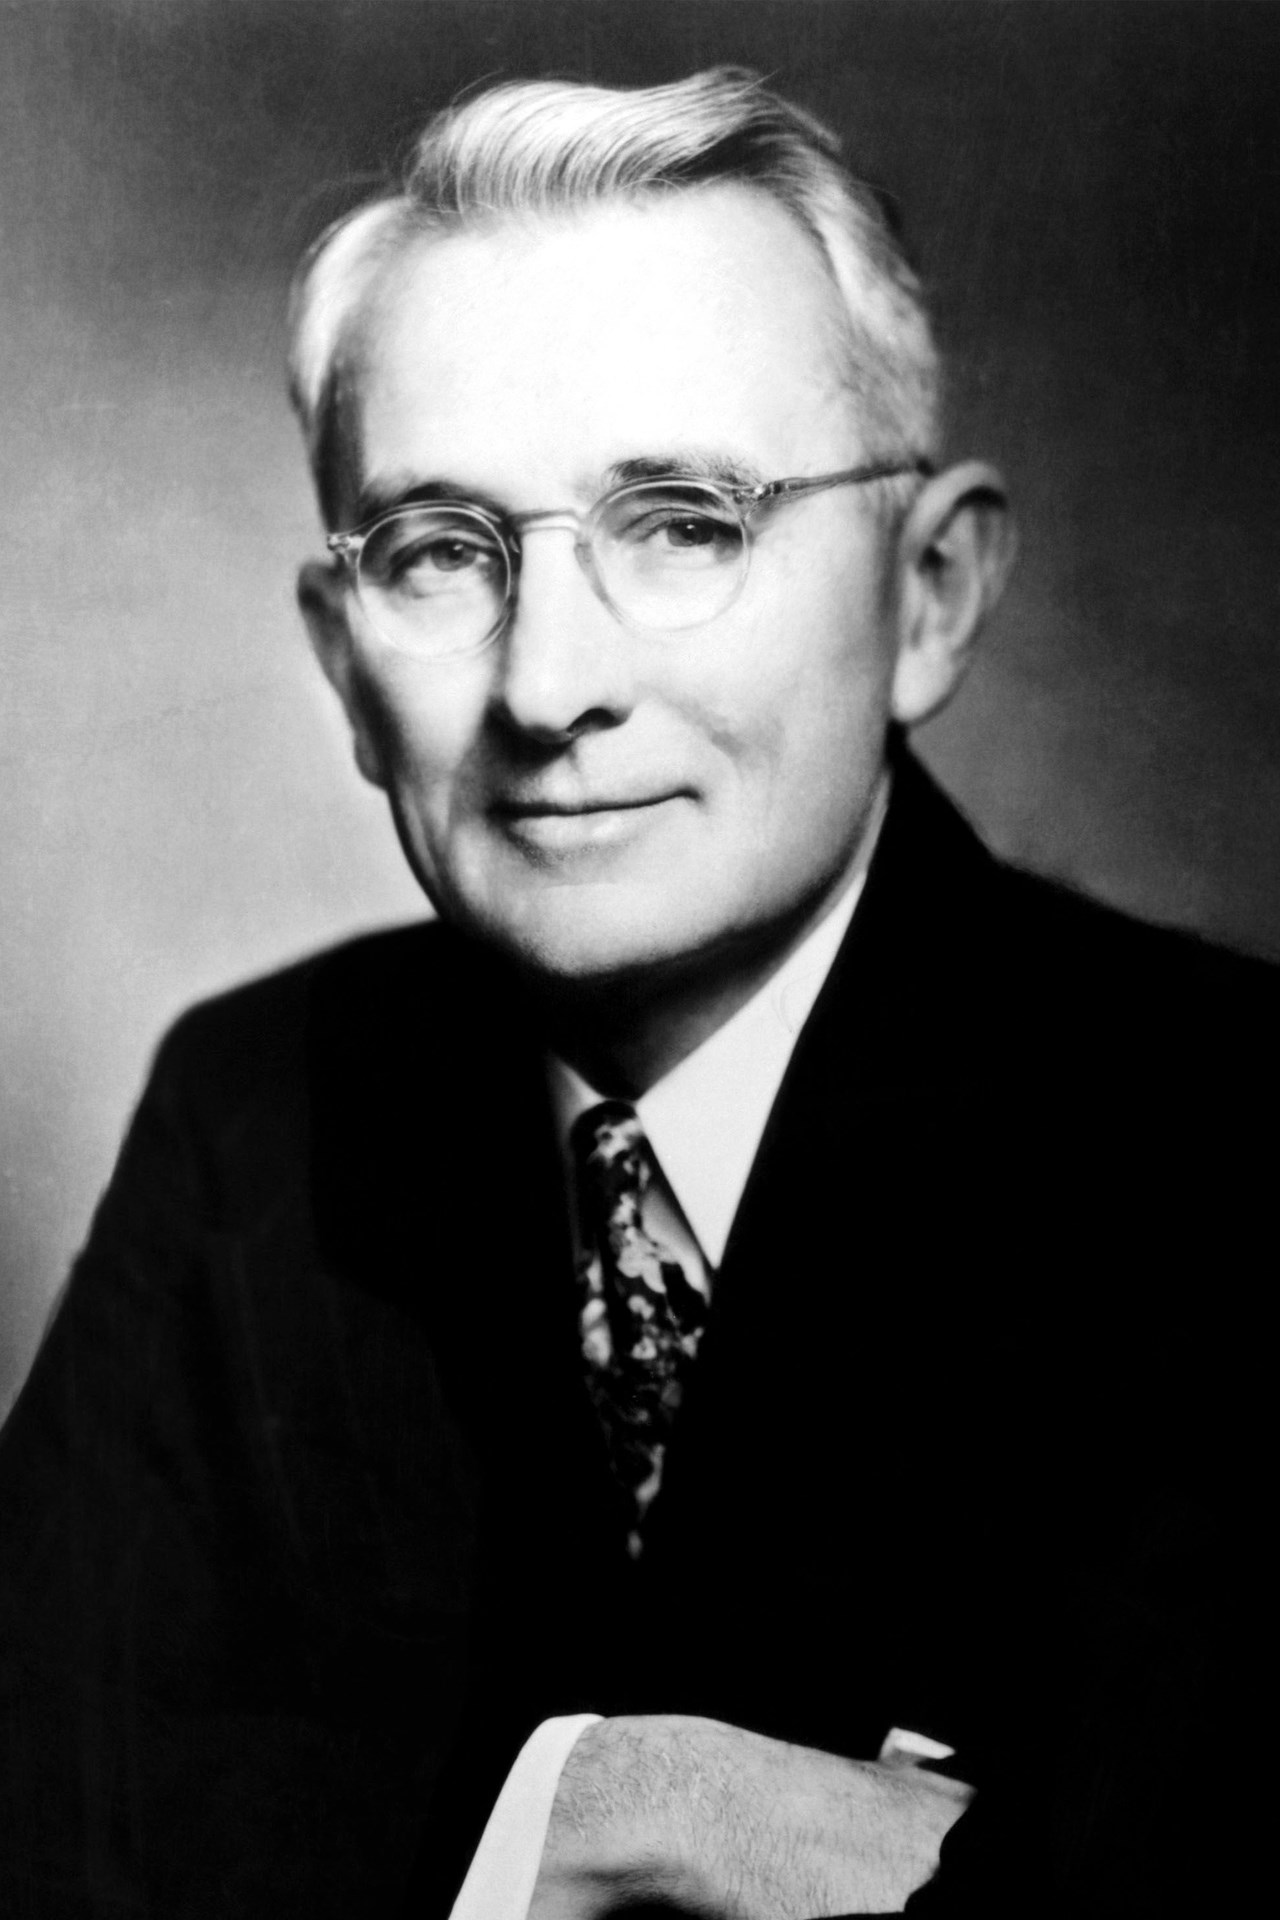 dale carnegie biography